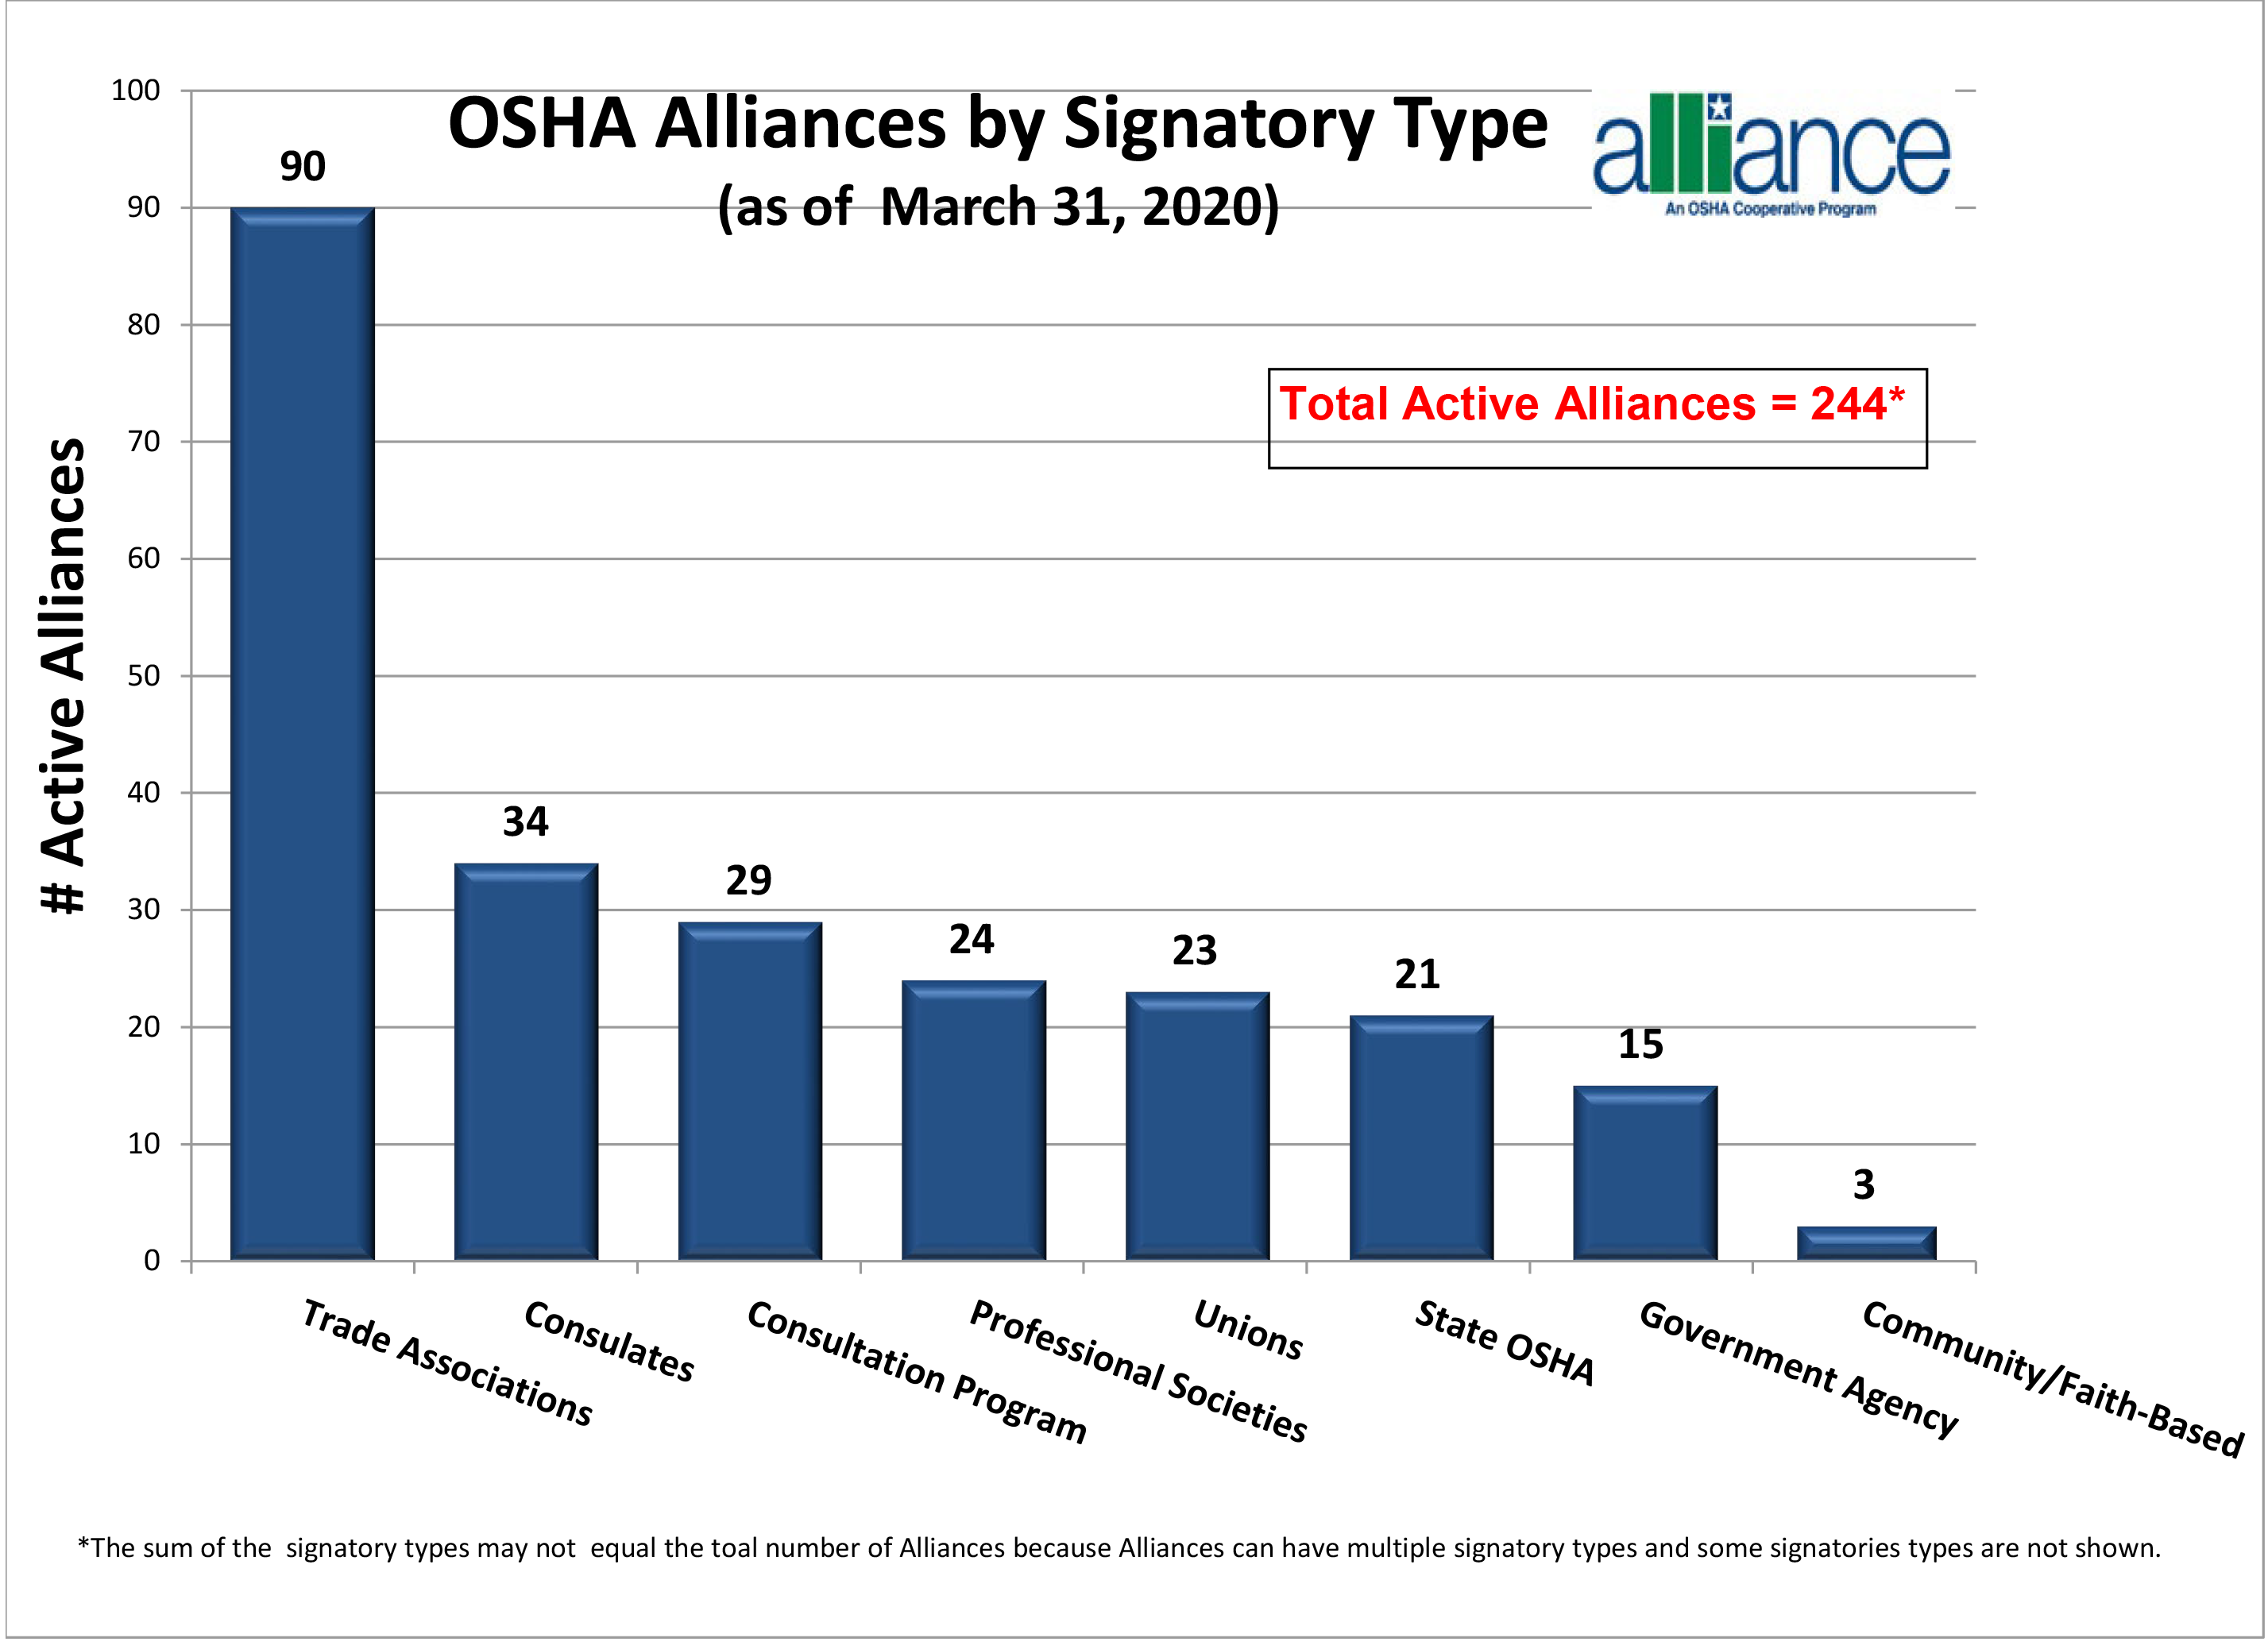 OSHA Alliances by Signatory Type